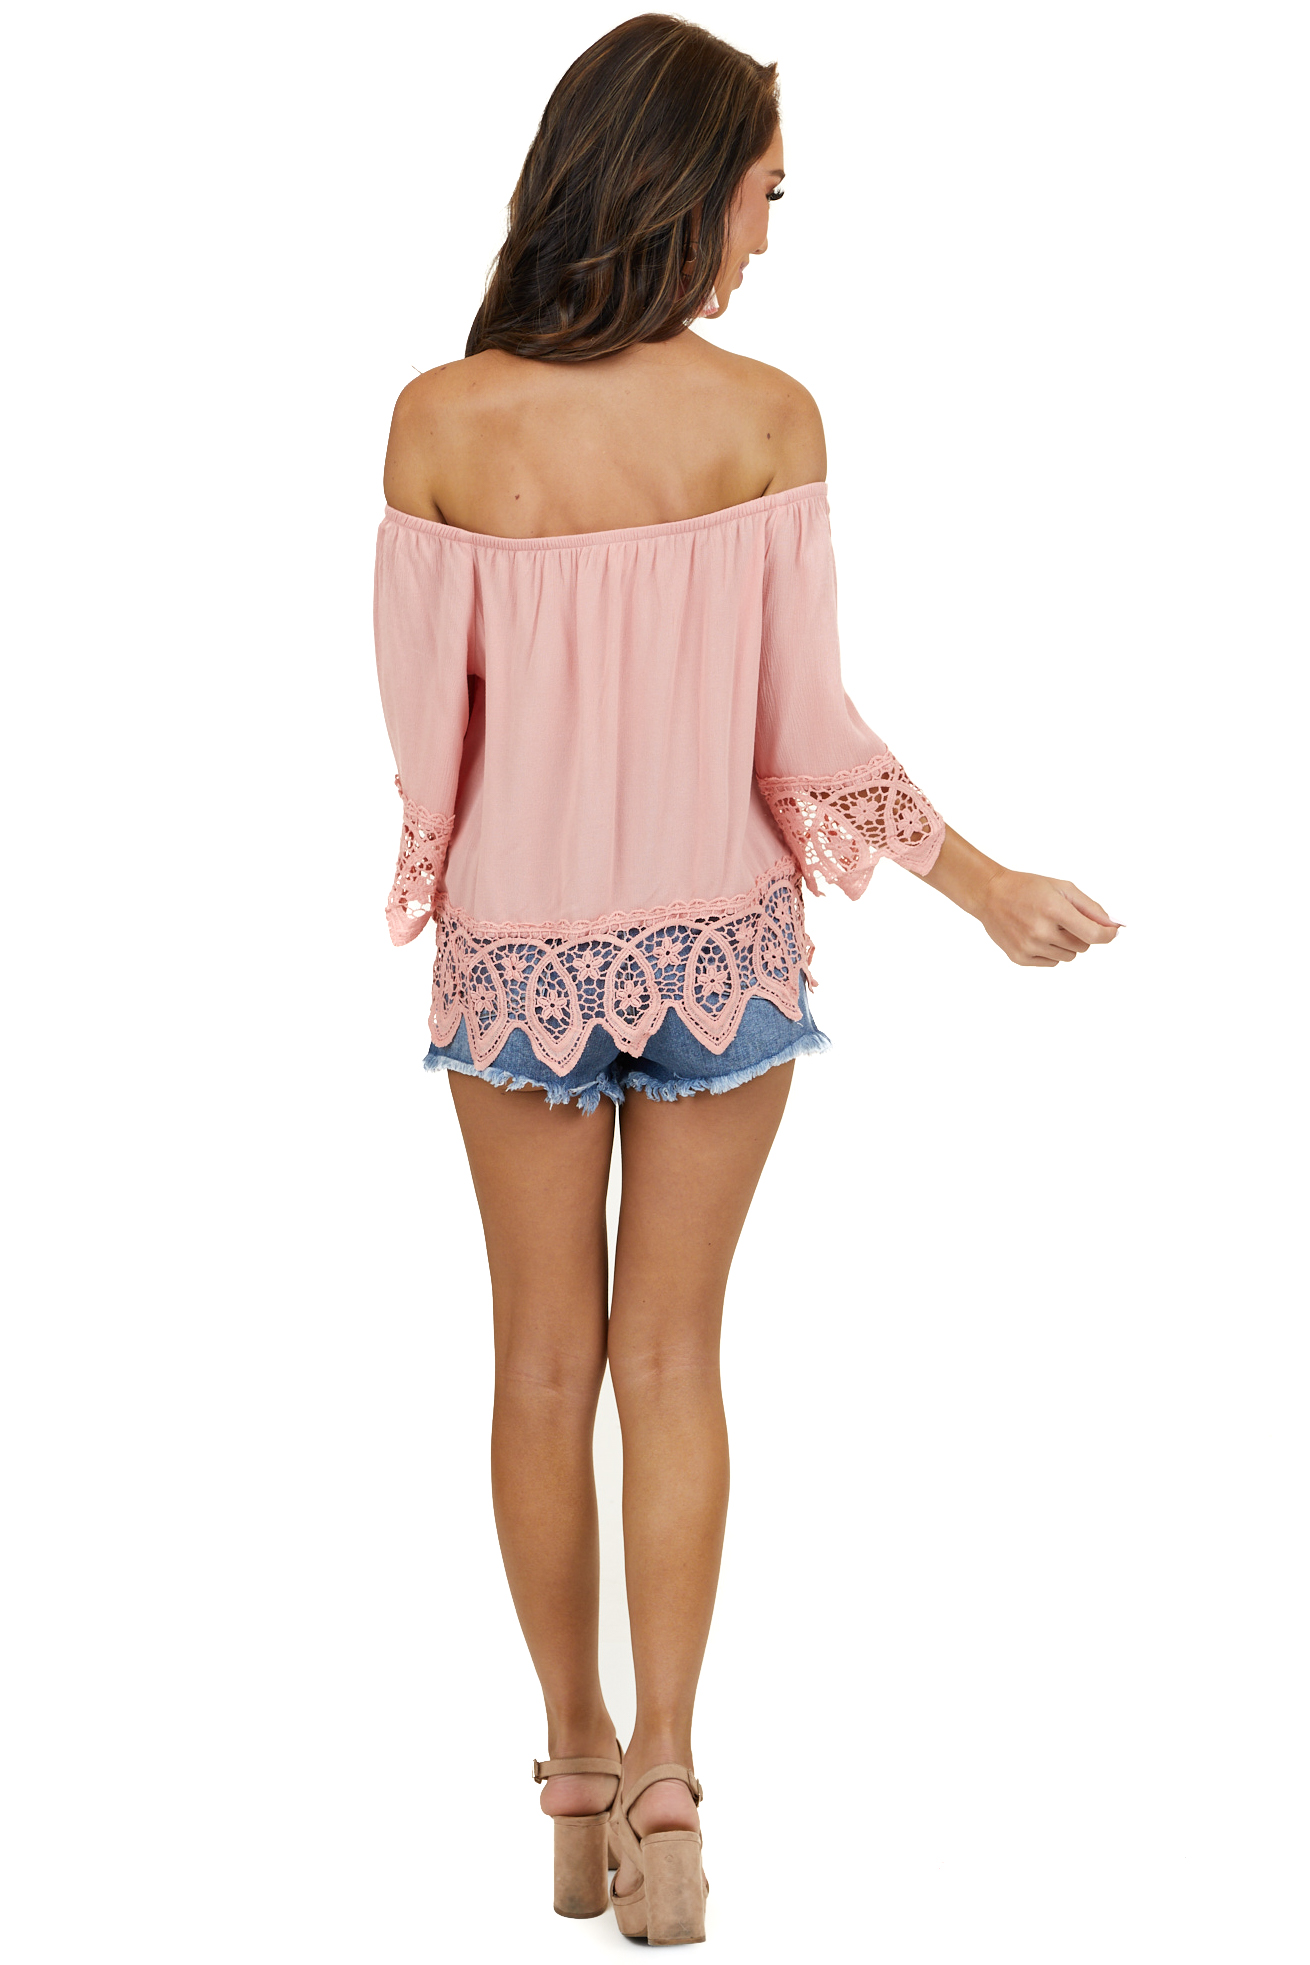 Blush Off the Shoulder Woven Top with Crochet Lace Details